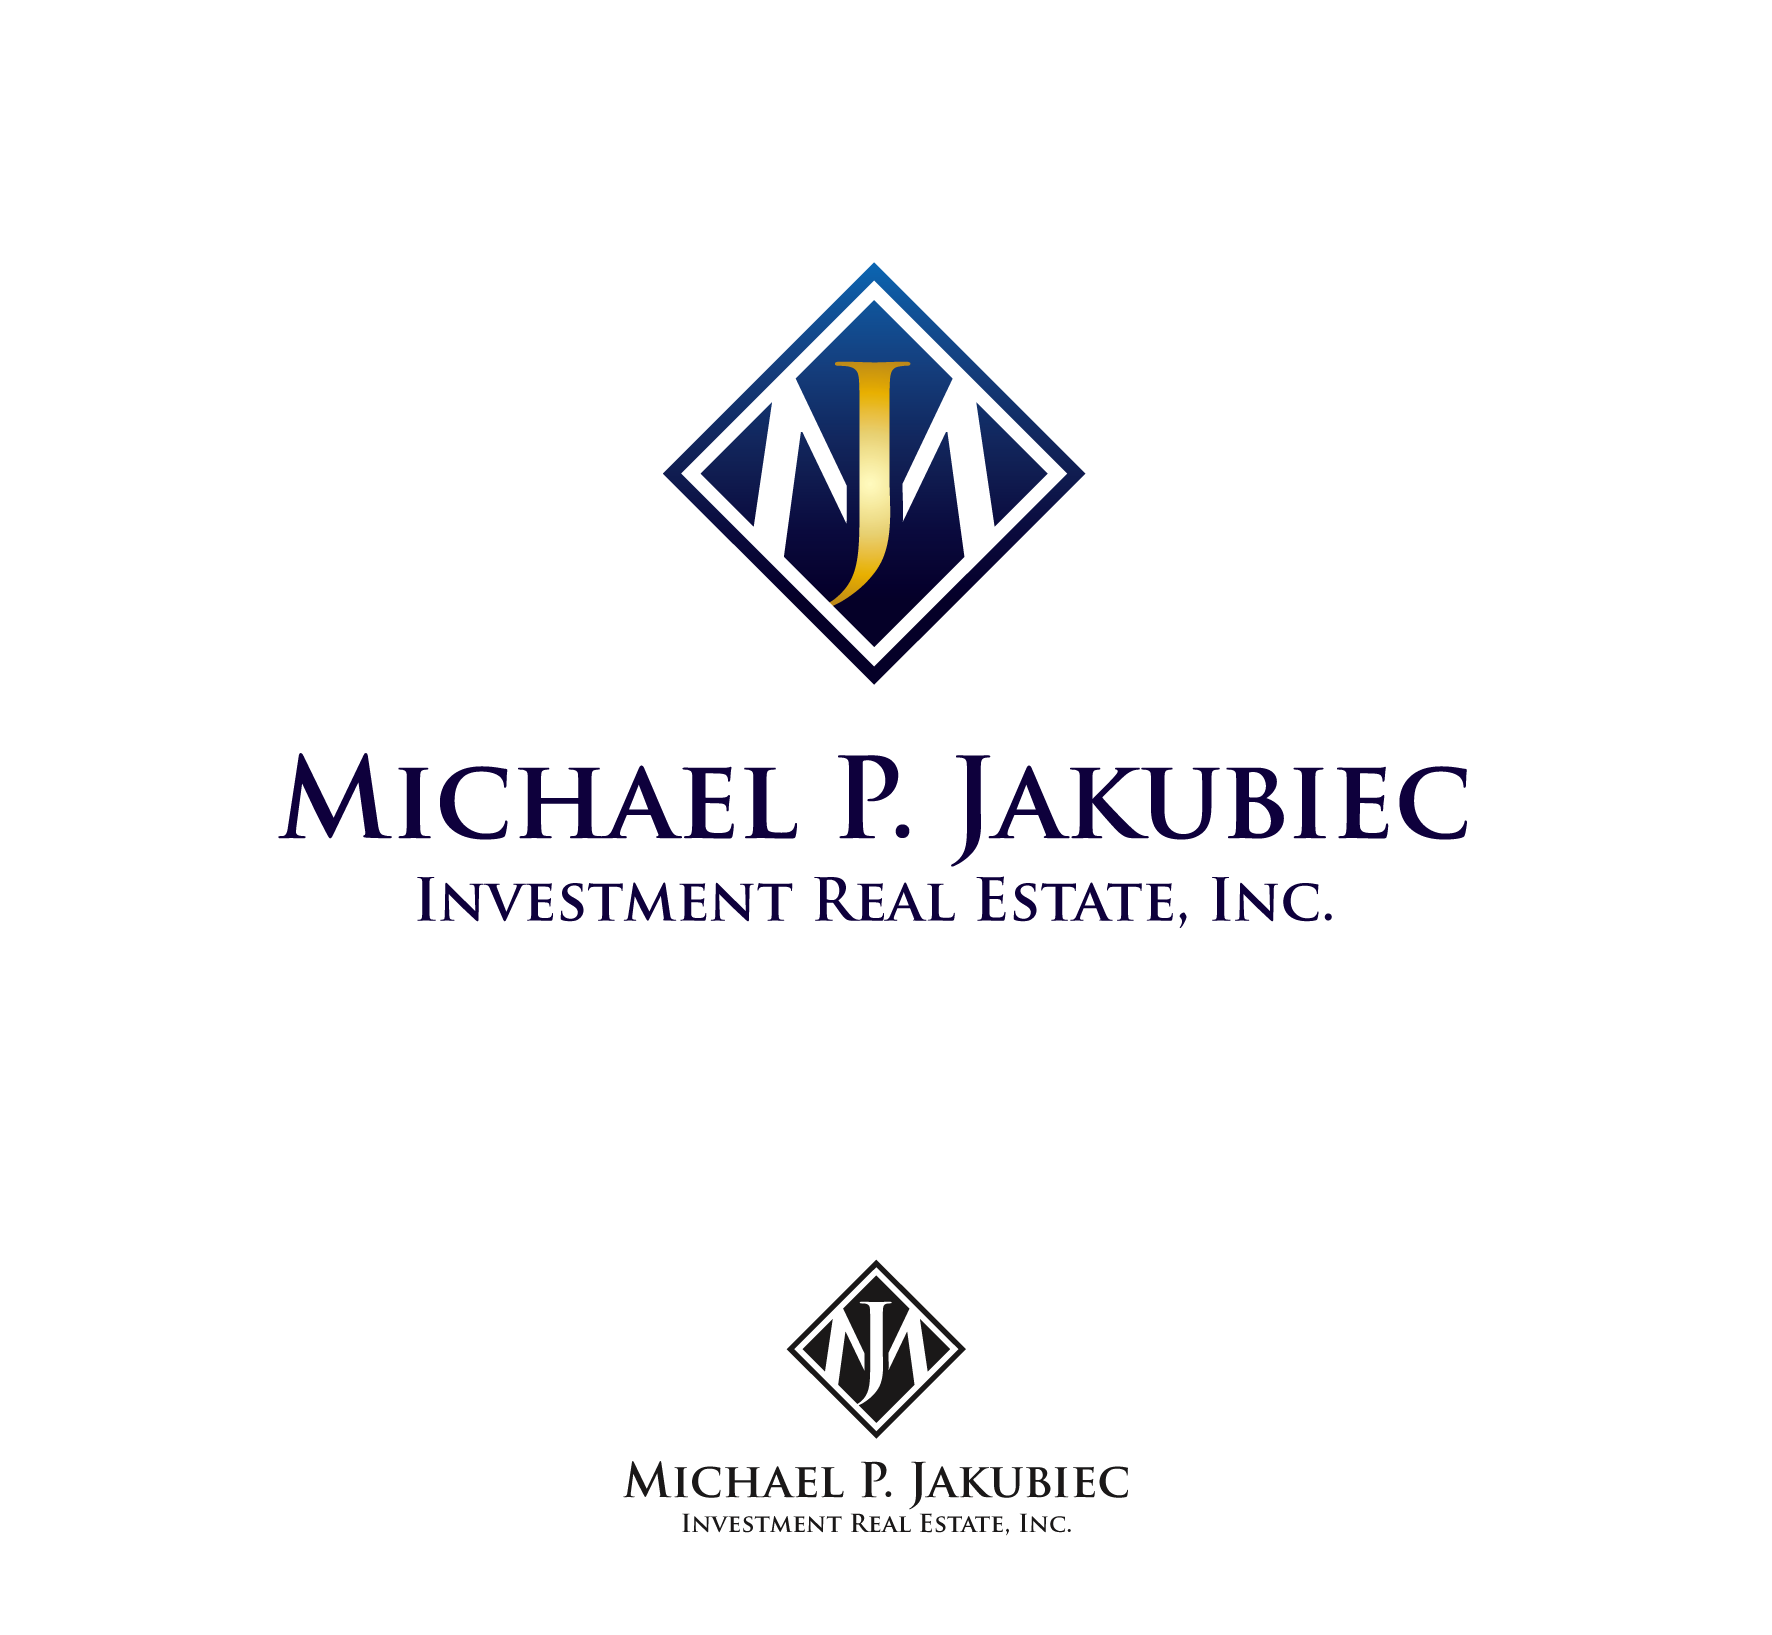 Logo Design by luna - Entry No. 44 in the Logo Design Contest New Logo Design for Michael P. Jakubiec Investment Real Estate, Inc..